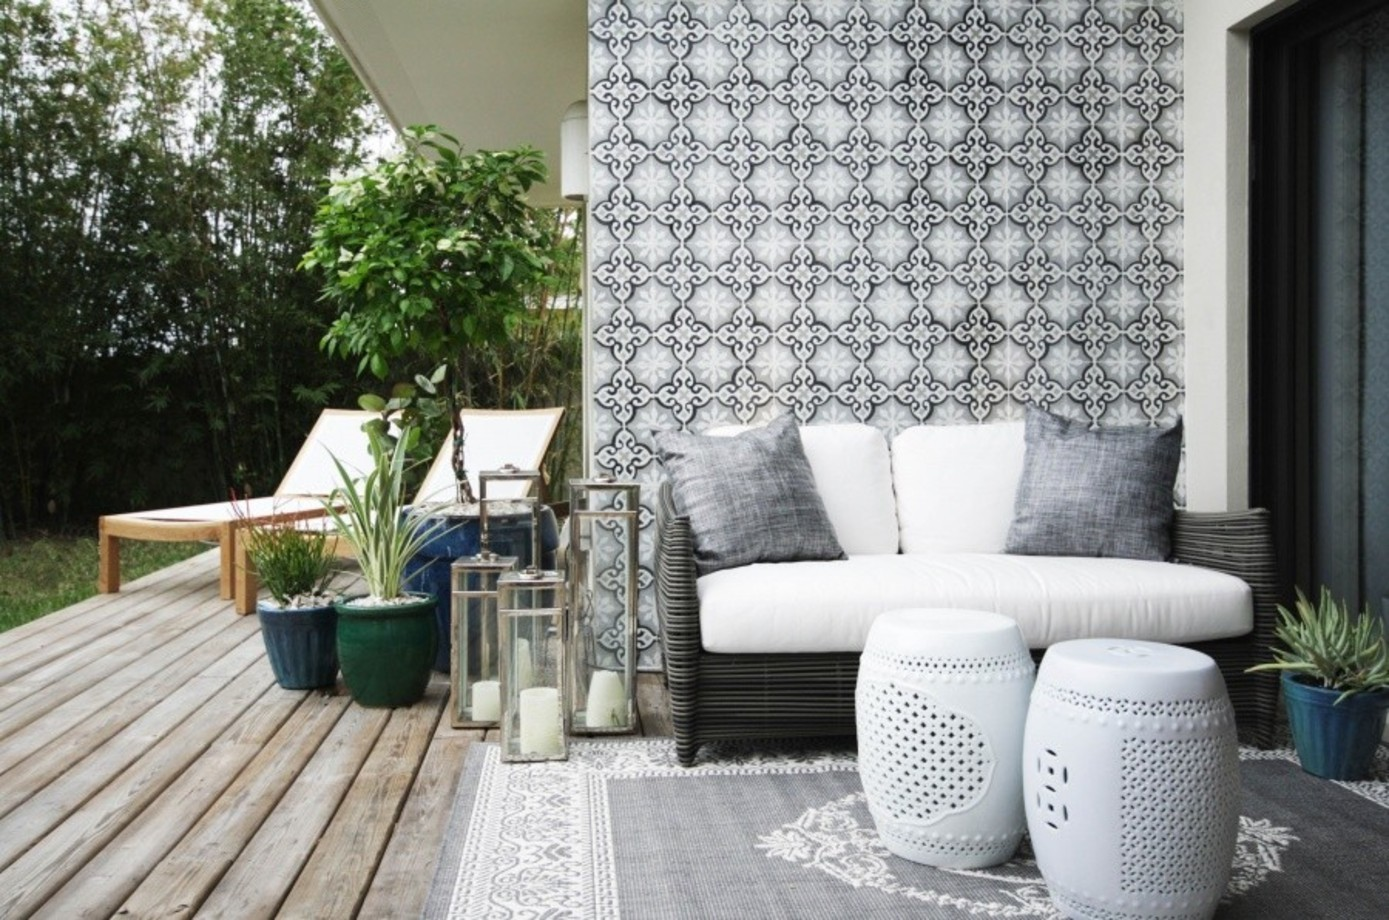 Wintergarten Einrichten Tipps Get The Look A Stylish Indoor Outdoor Patio Decorating